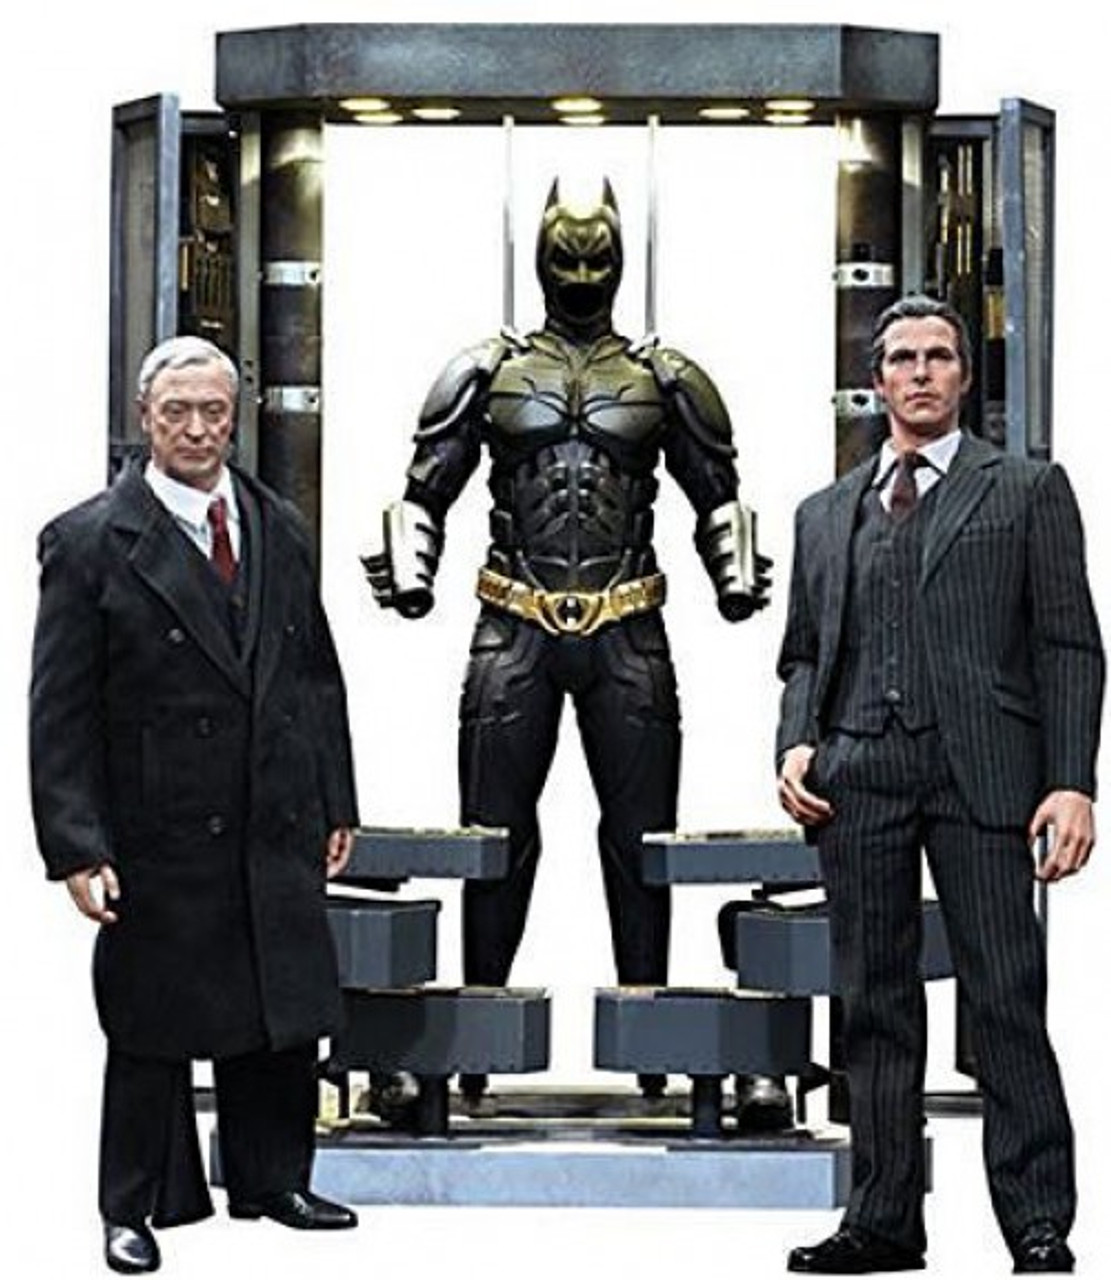 The Dark Knight Movie Masterpiece Batman Armory With Bruce Wayne & Alfred Pennyworth Collectible Figure Set